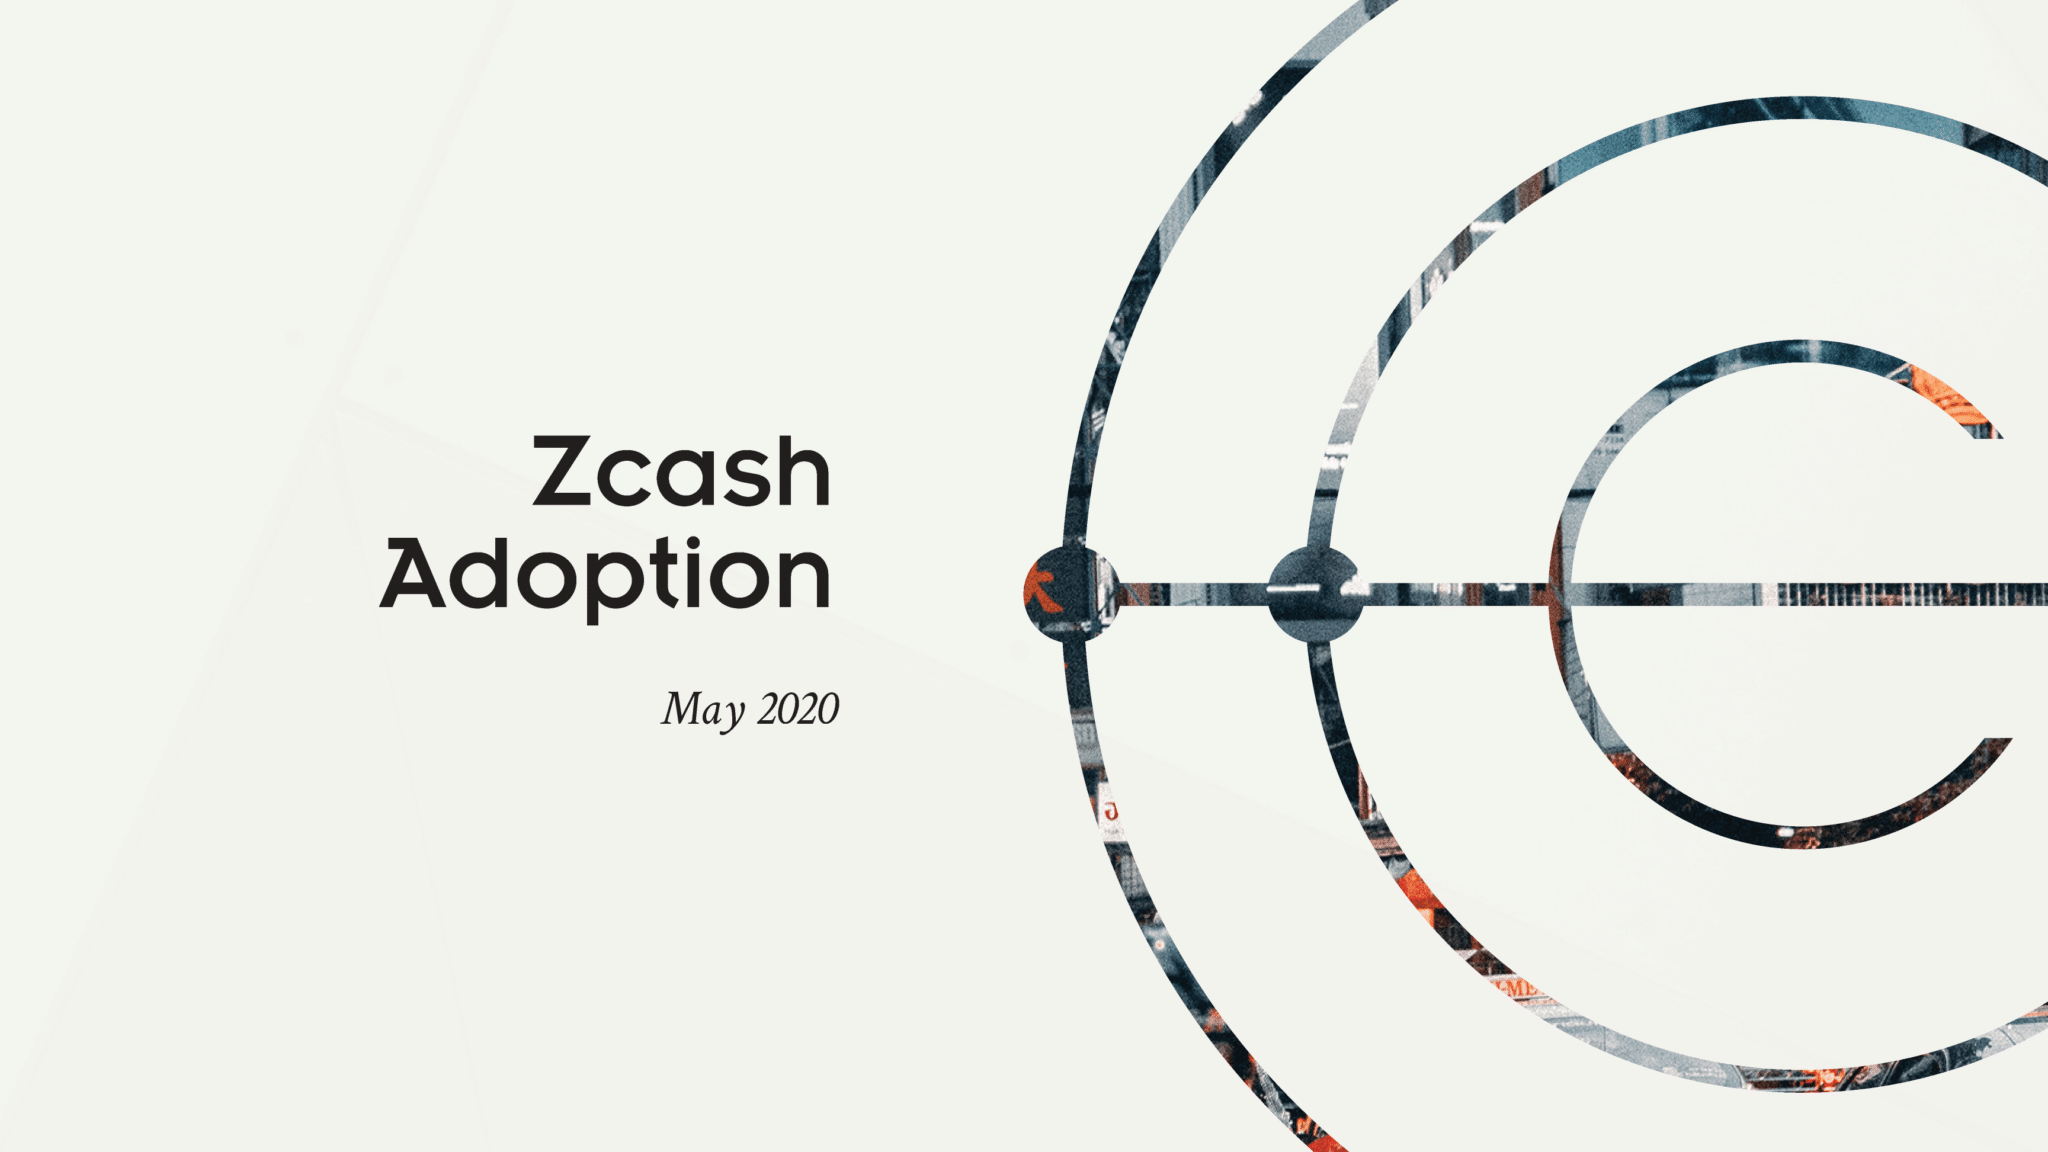 The state of Zcash adoption